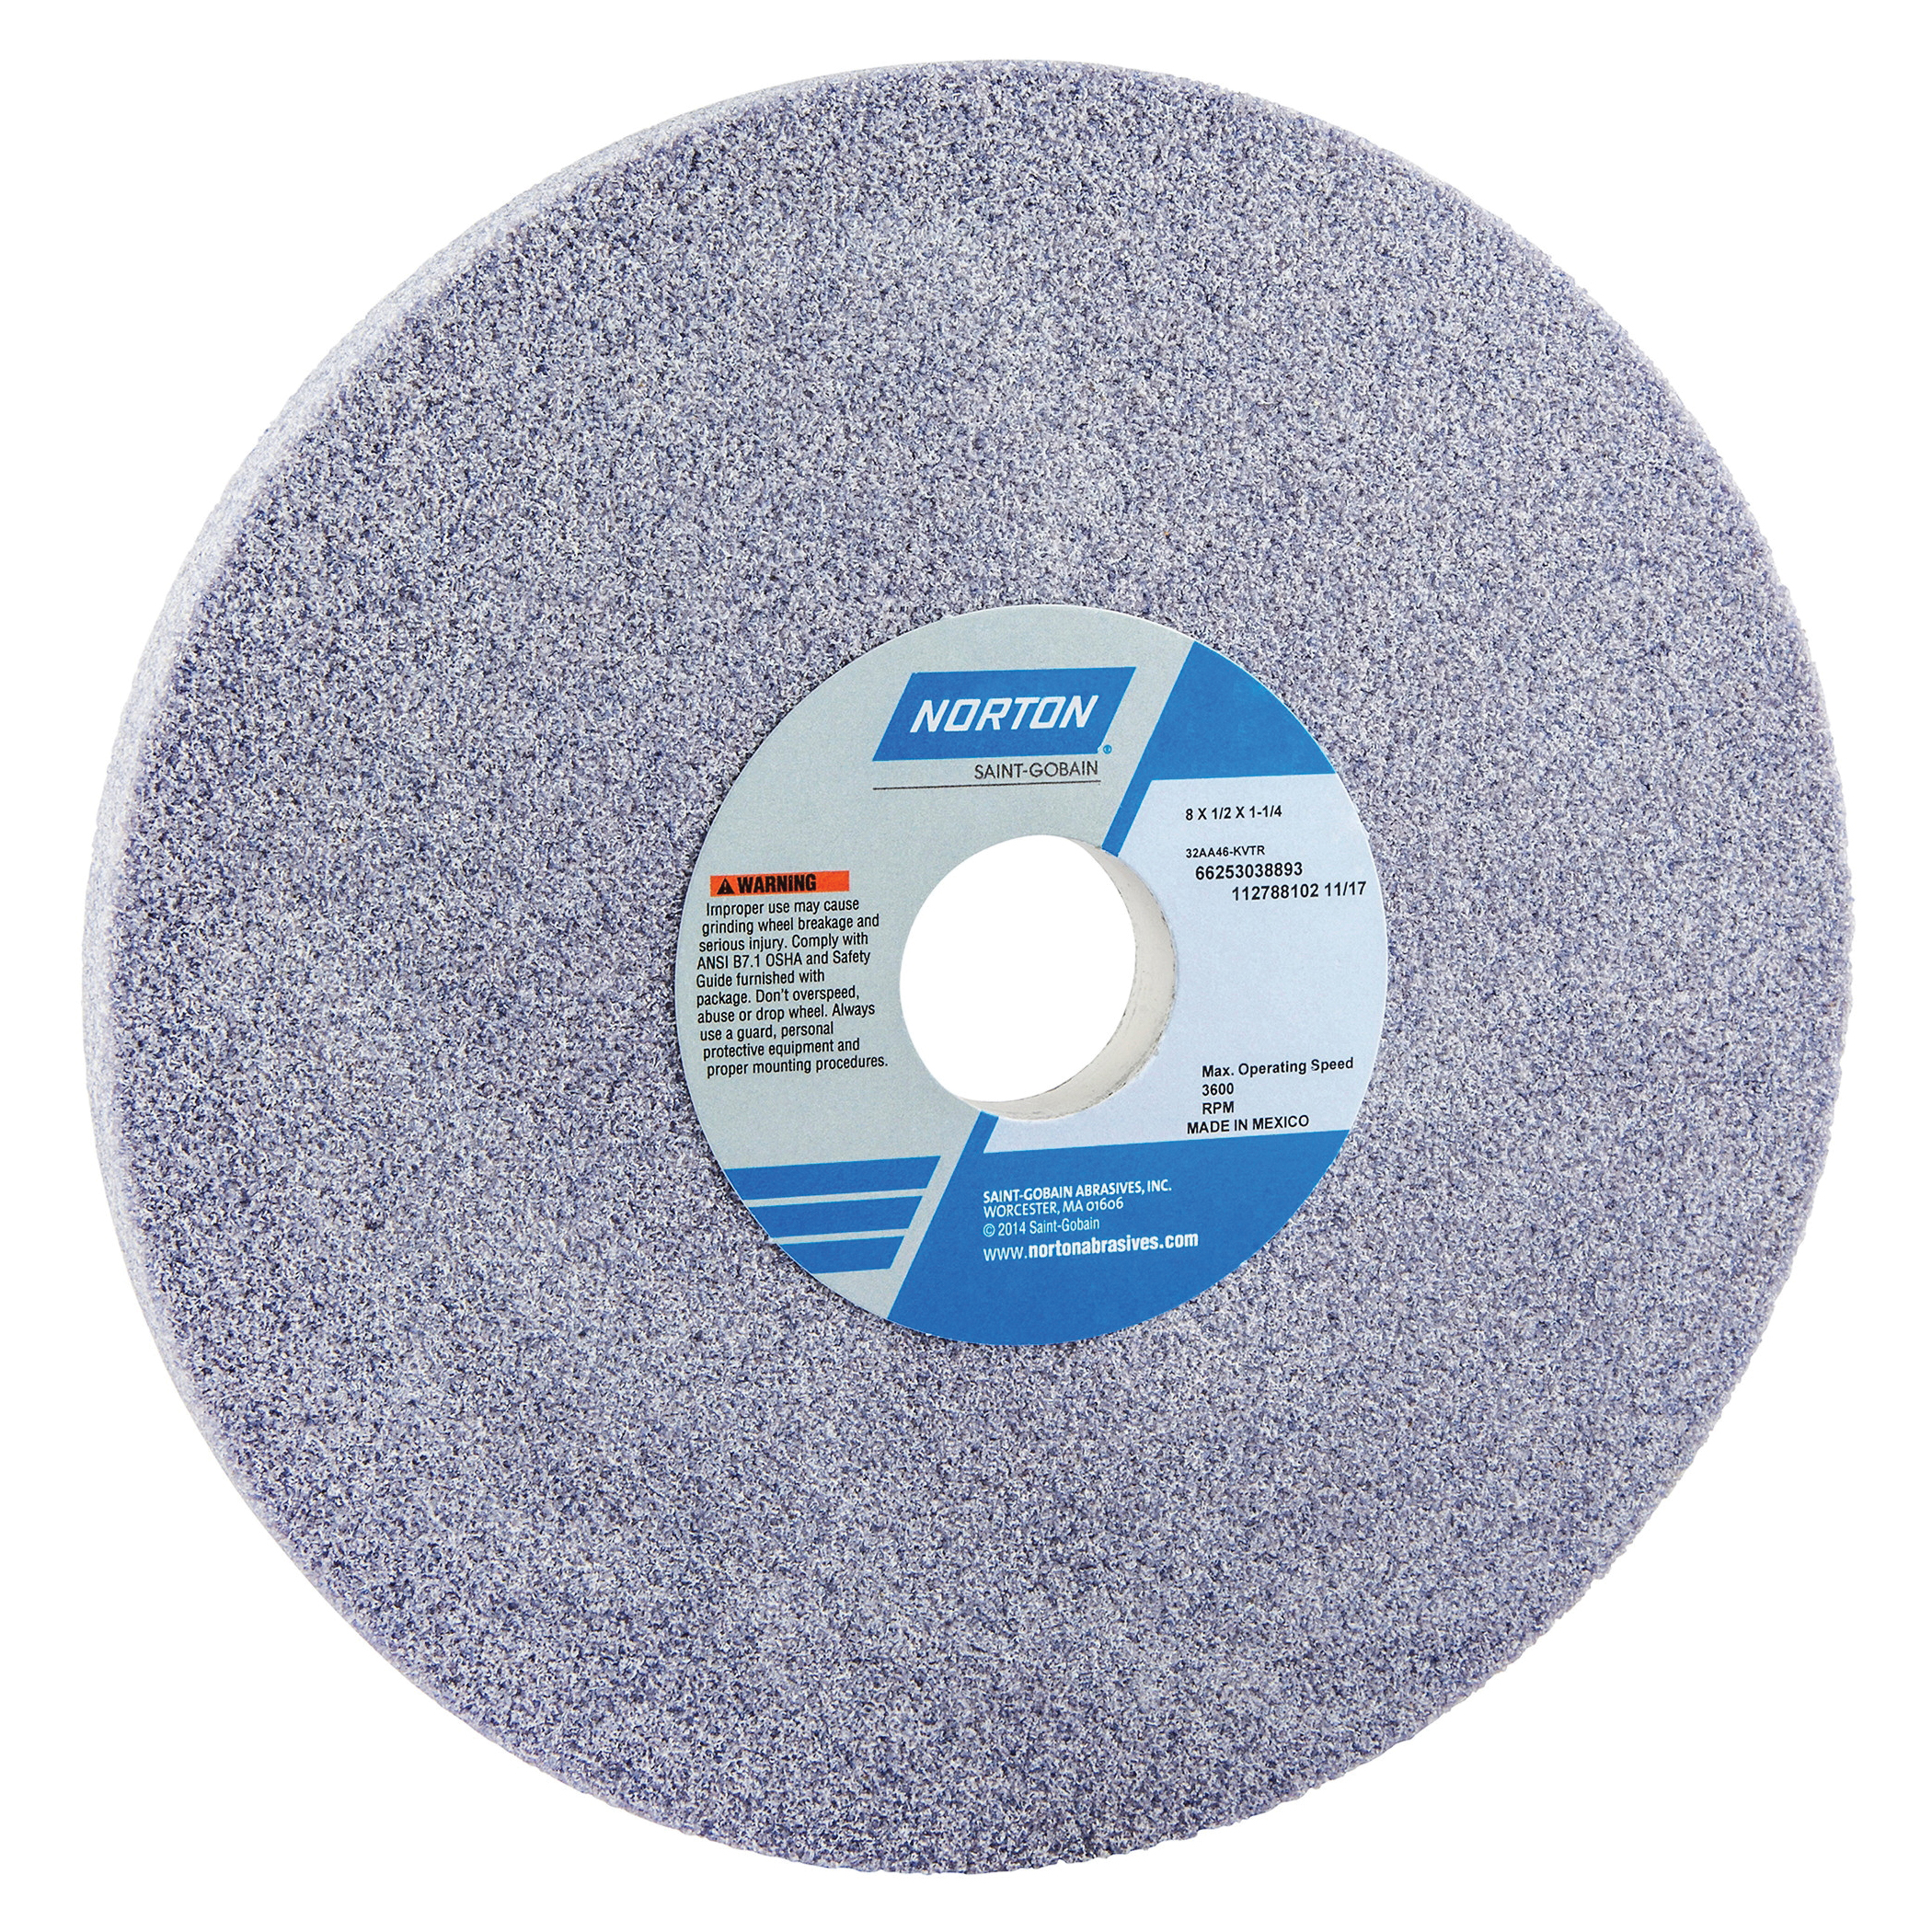 Norton® 66253038893 32AA Straight Toolroom Wheel, 8 in Dia x 1/2 in THK, 1-1/4 in Center Hole, 46 Grit, Aluminum Oxide Abrasive